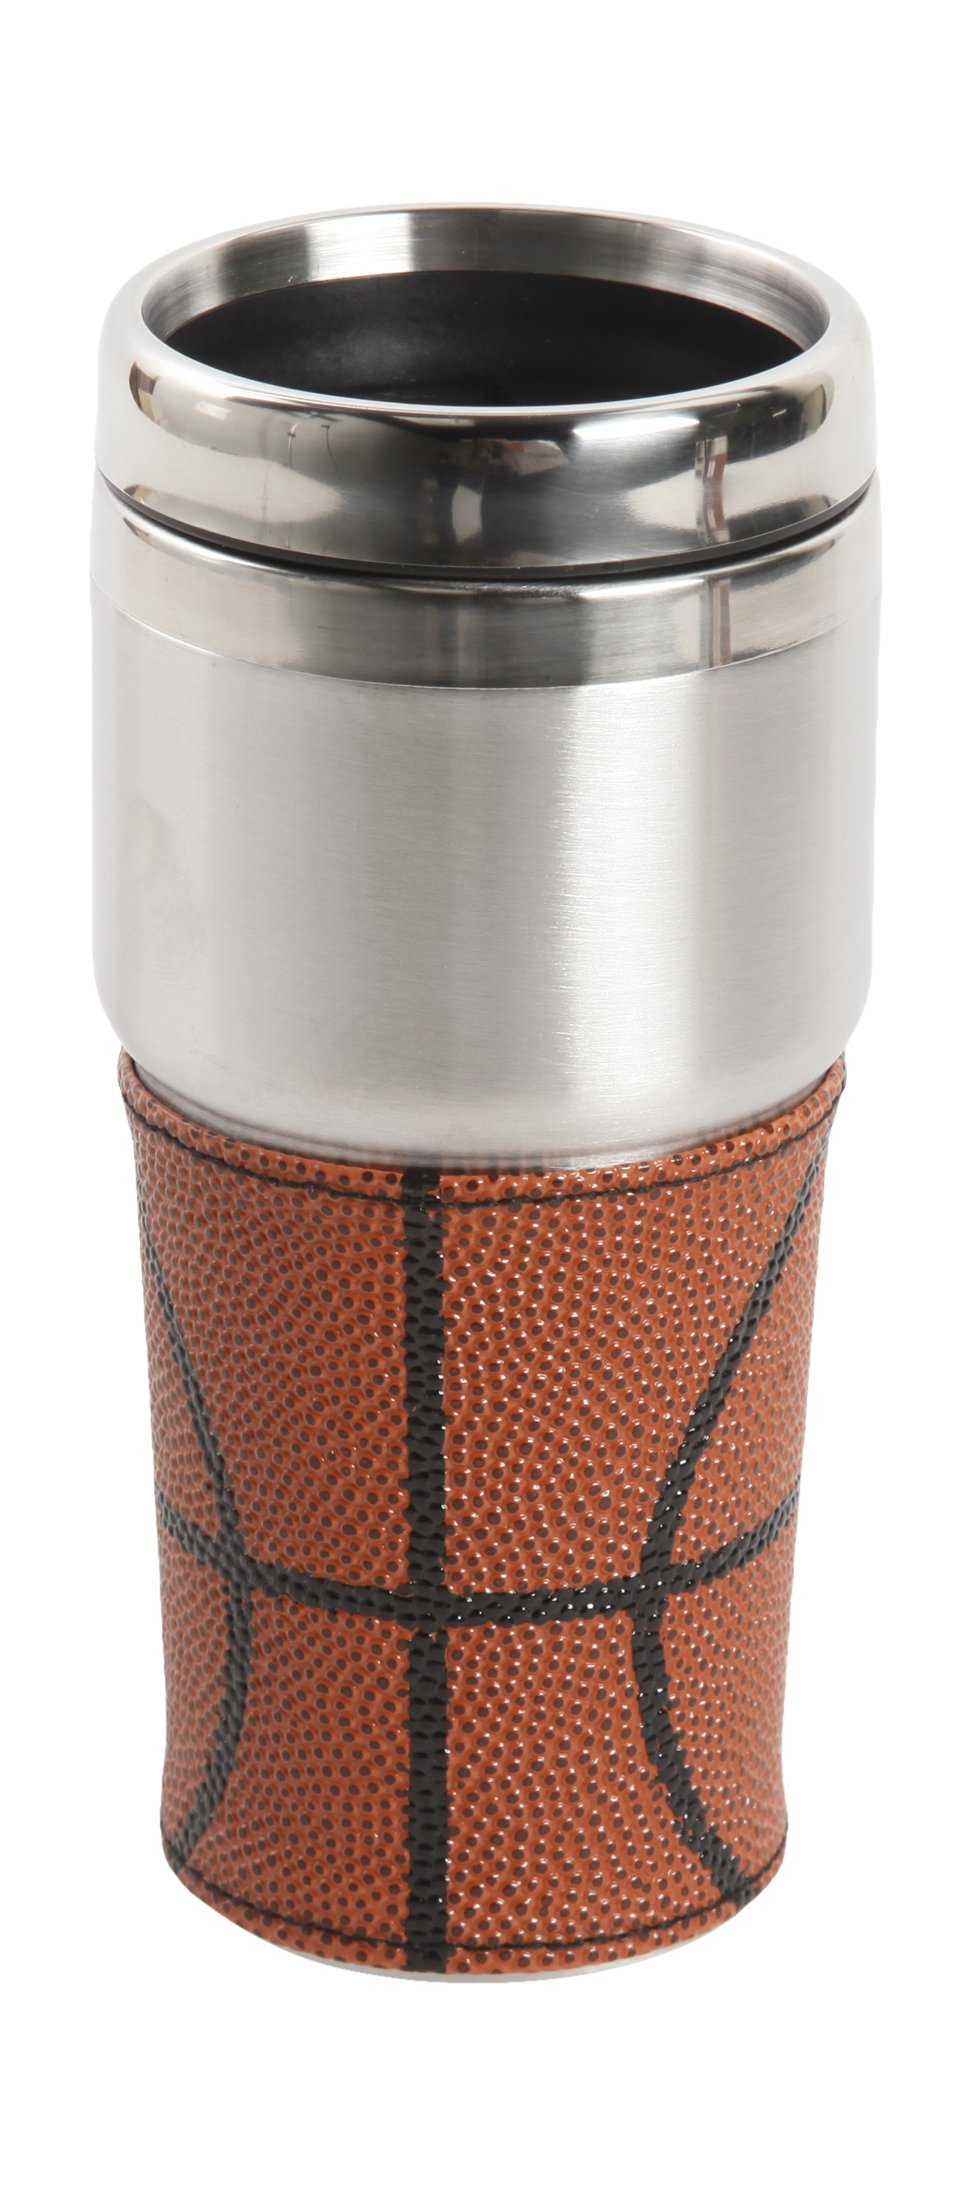 Gibson Home 92621.03 Sports Edition Double Wall Basketball Design Tumbler with Leather Pouch, 15 oz, Orange